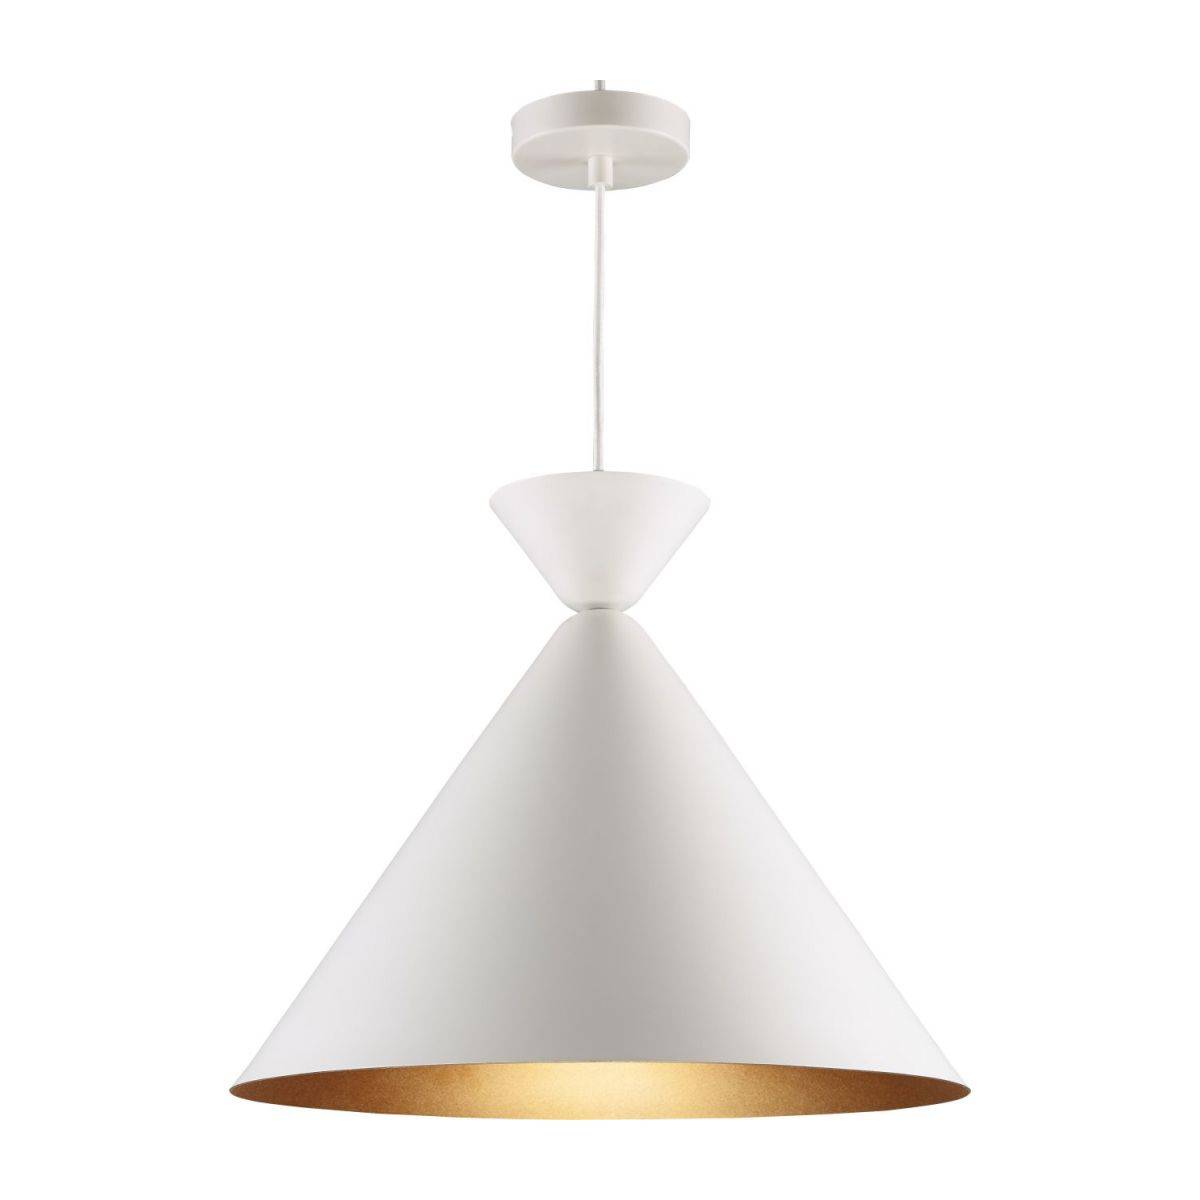 Triangular ceiling lamp, white and copper n°1